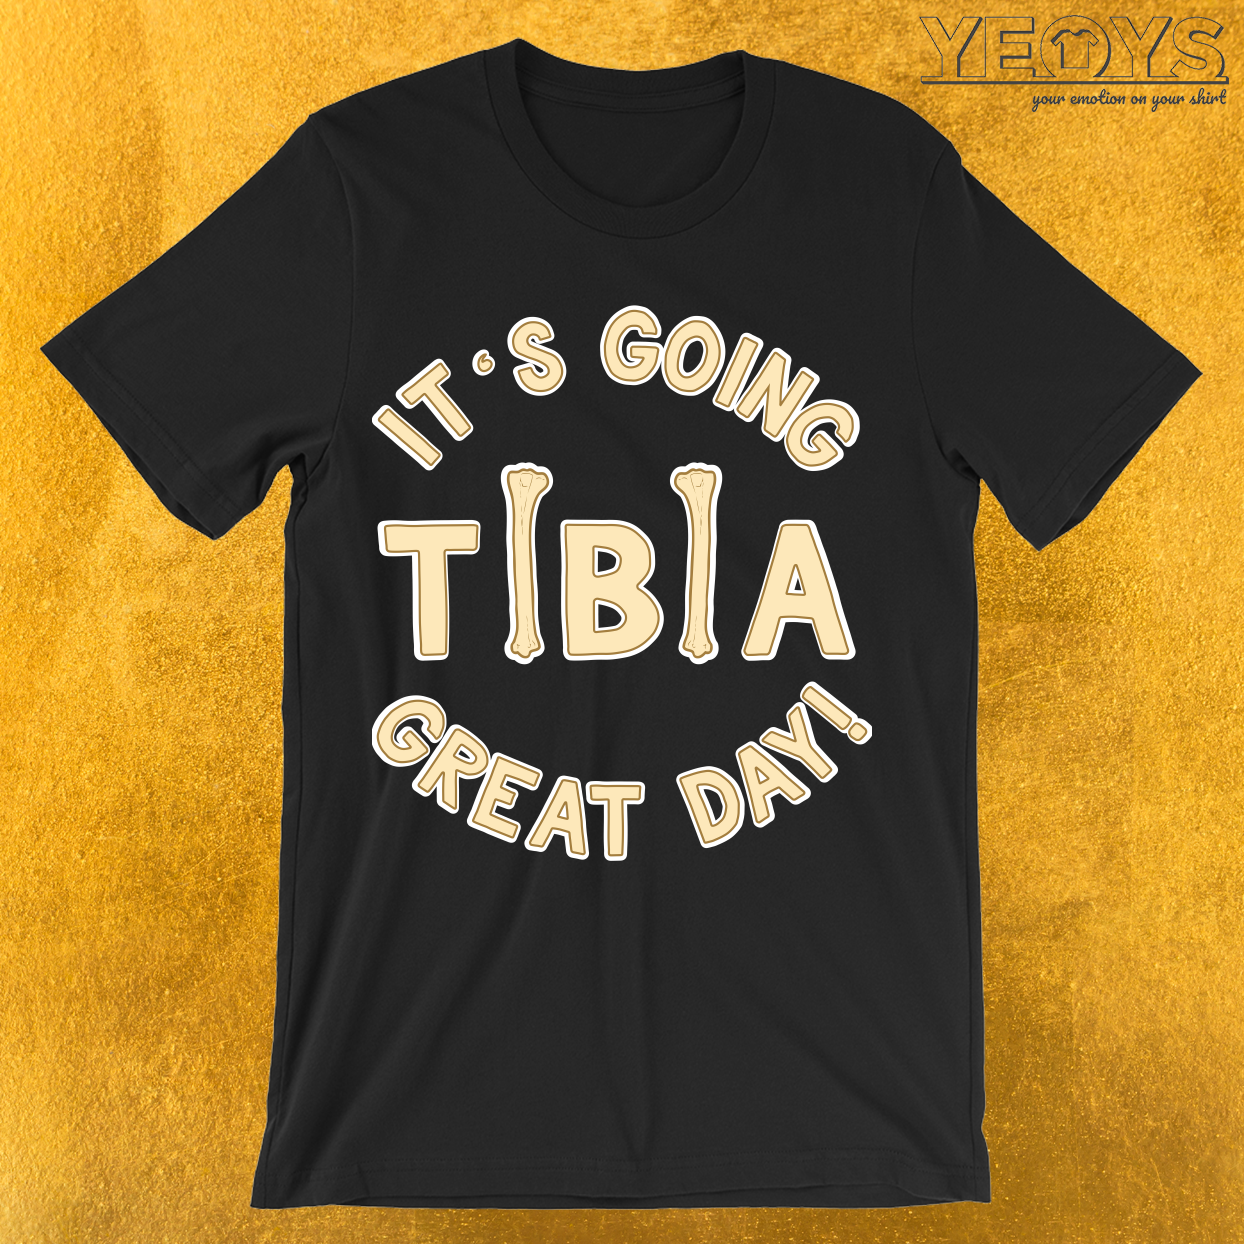 It's Going Tibia Great Day T-Shirt